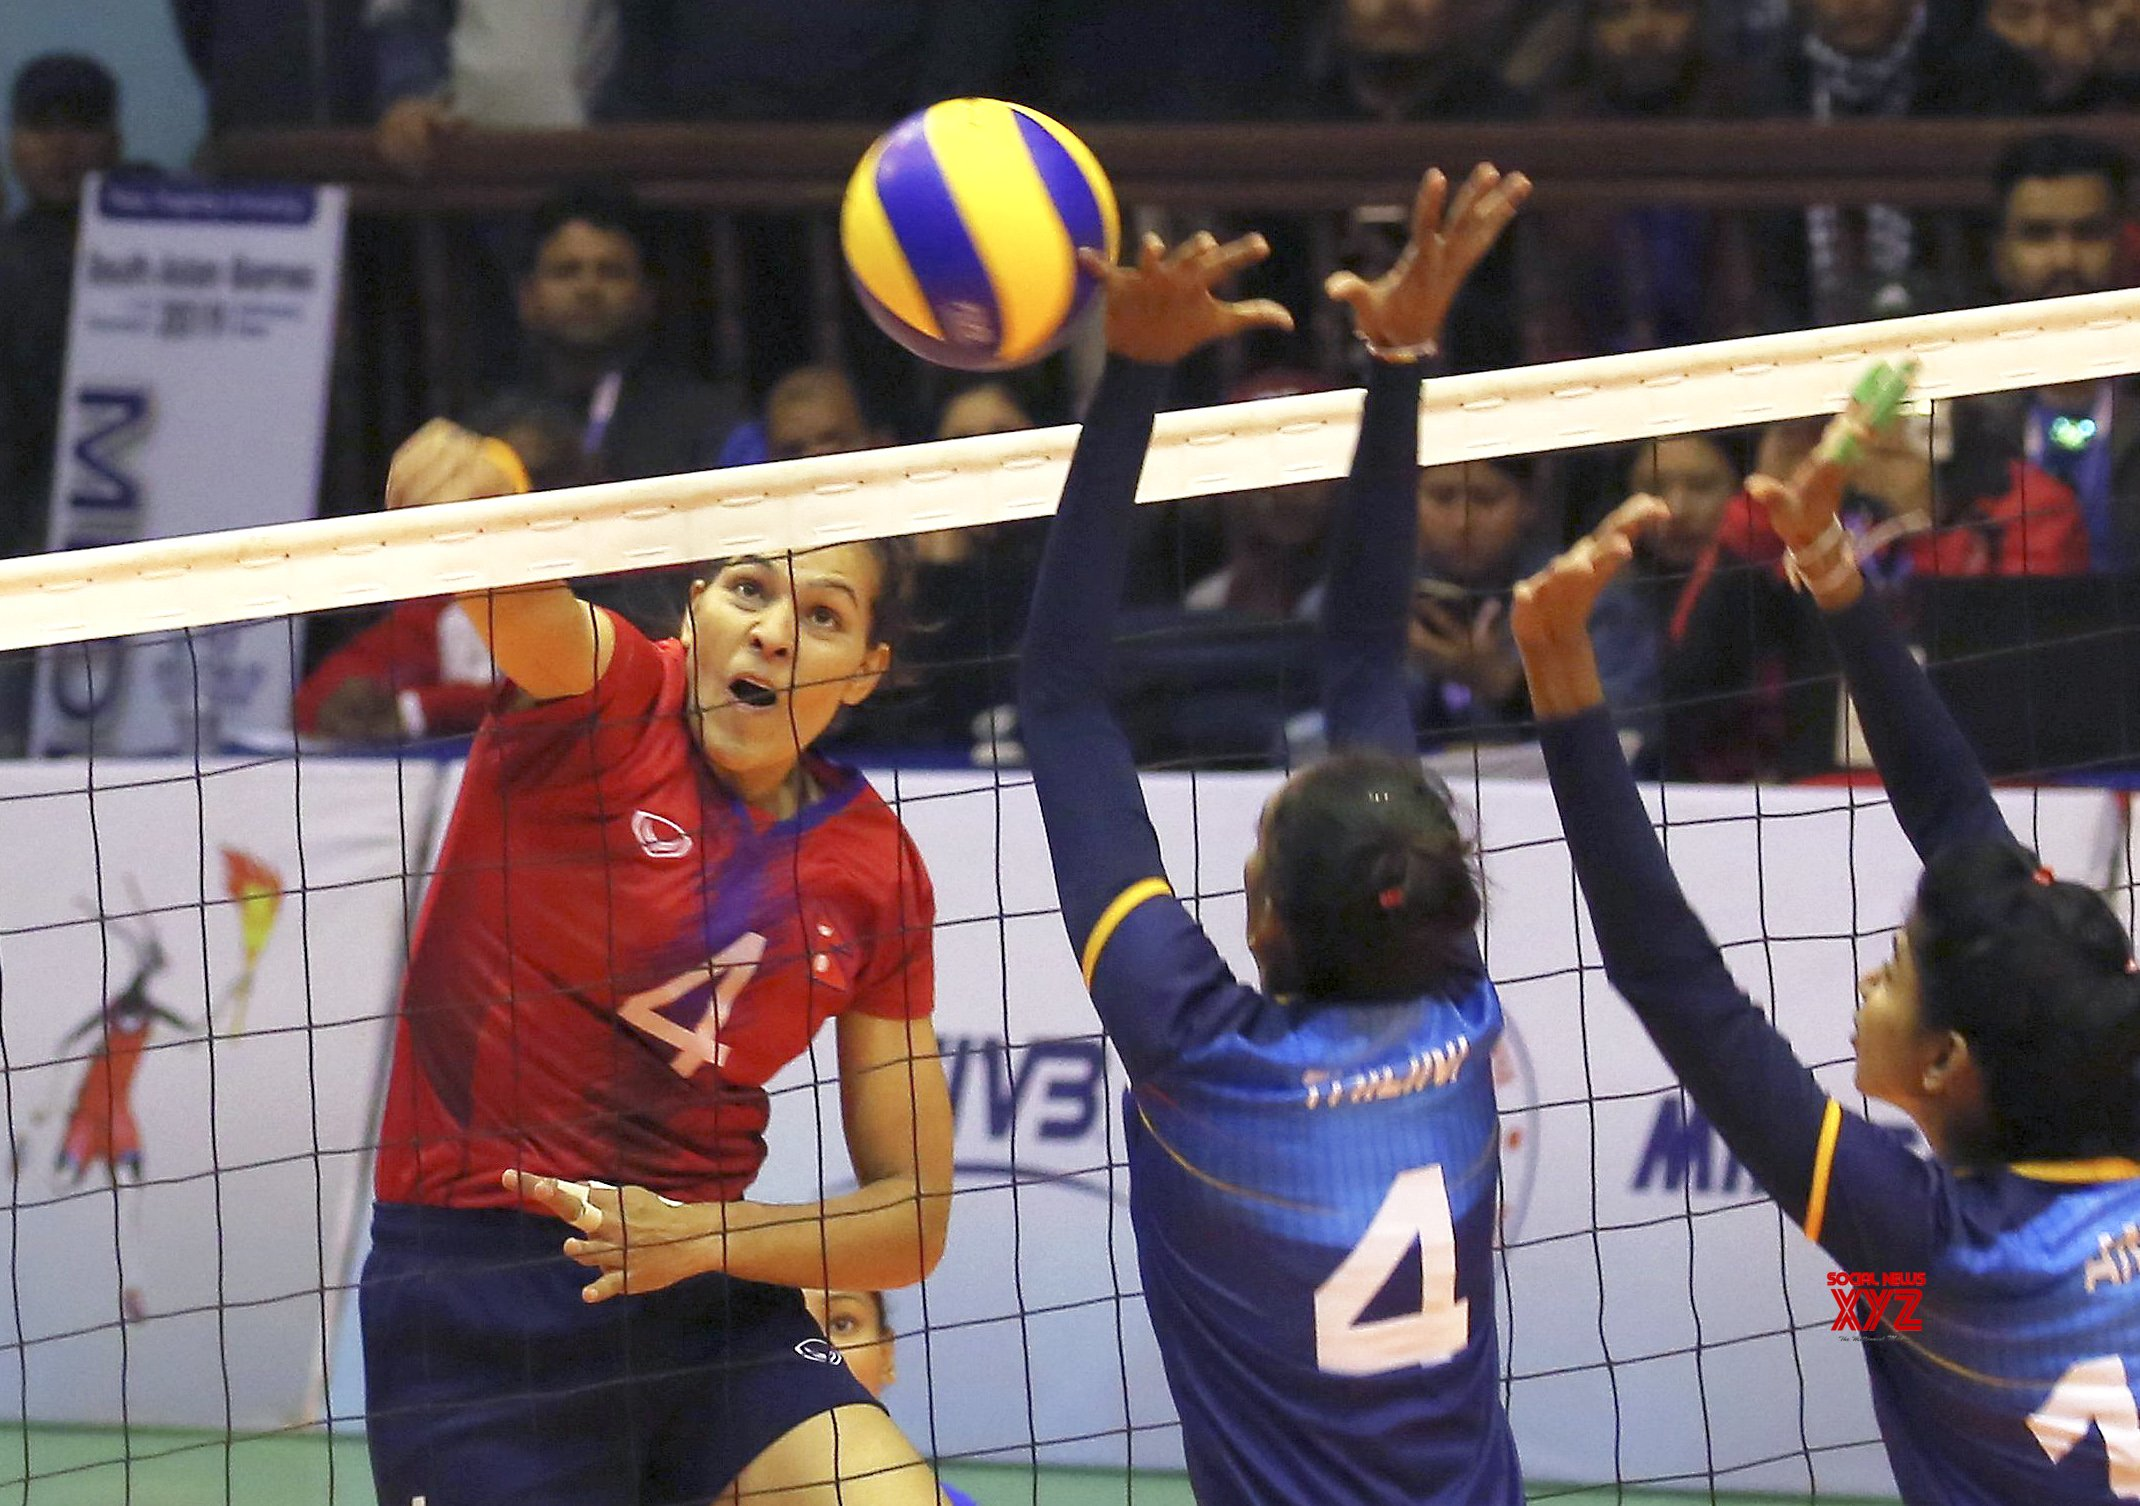 NEPAL - KATHMANDU - 13TH SOUTH ASIAN GAMES - WOMEN'S VOLLEYBALL - SEMIFINAL #Gallery